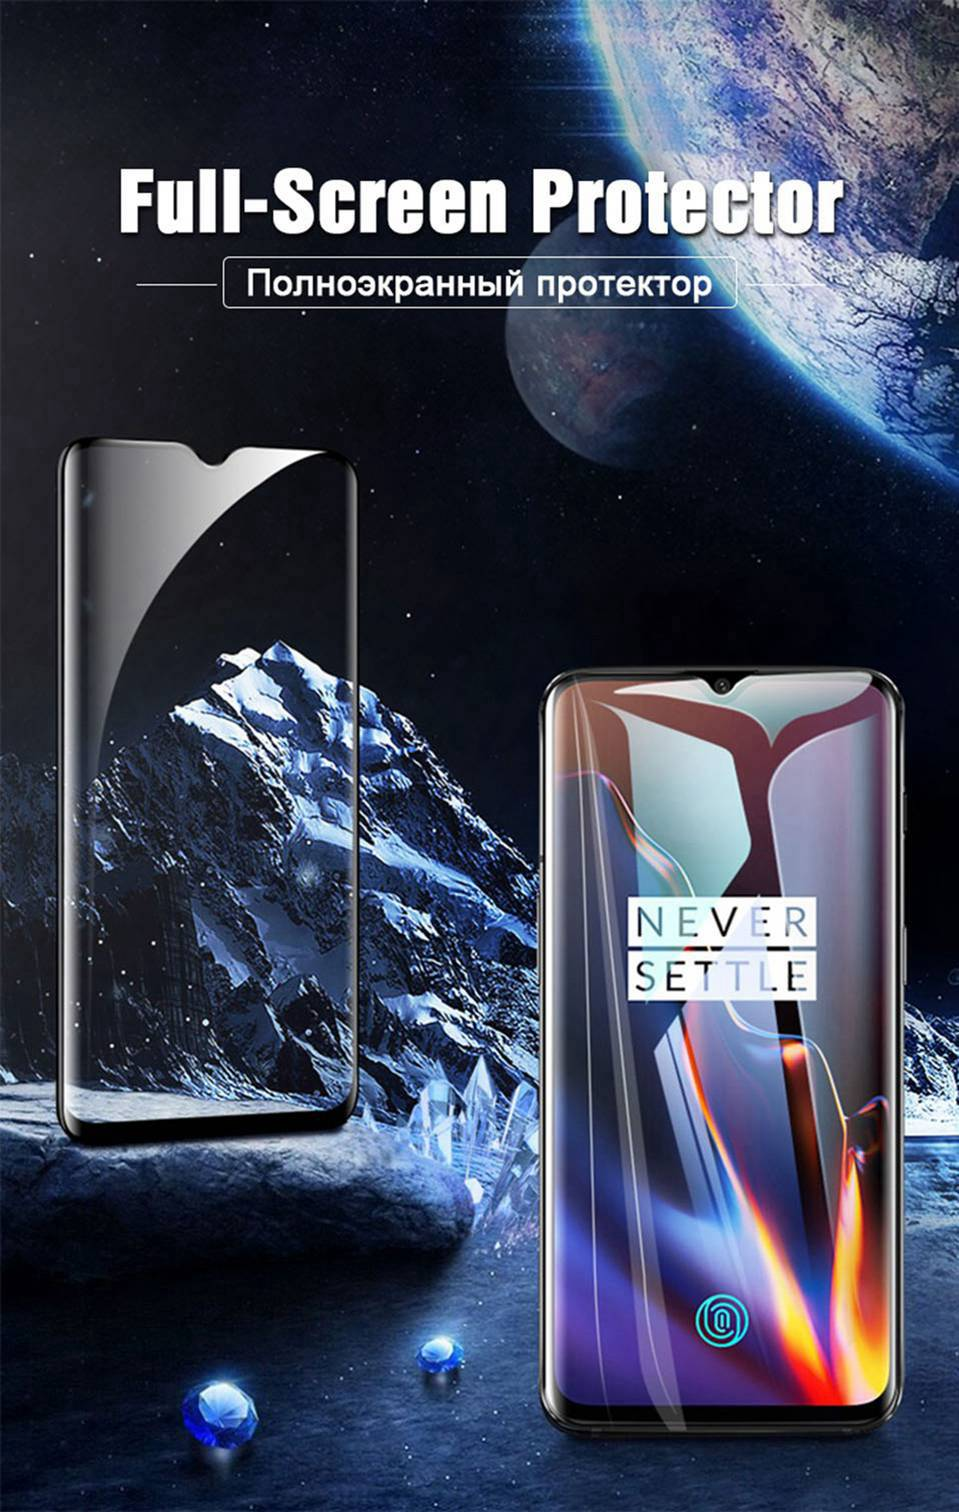 6D Glass for OPPO F7 R15 R17 F9 Pro Screen Protector Full Cover Tempered Glass for OPPO Realme 2 Pro U1 C1 A5 A3s A7 A71 A83 K1 (3)